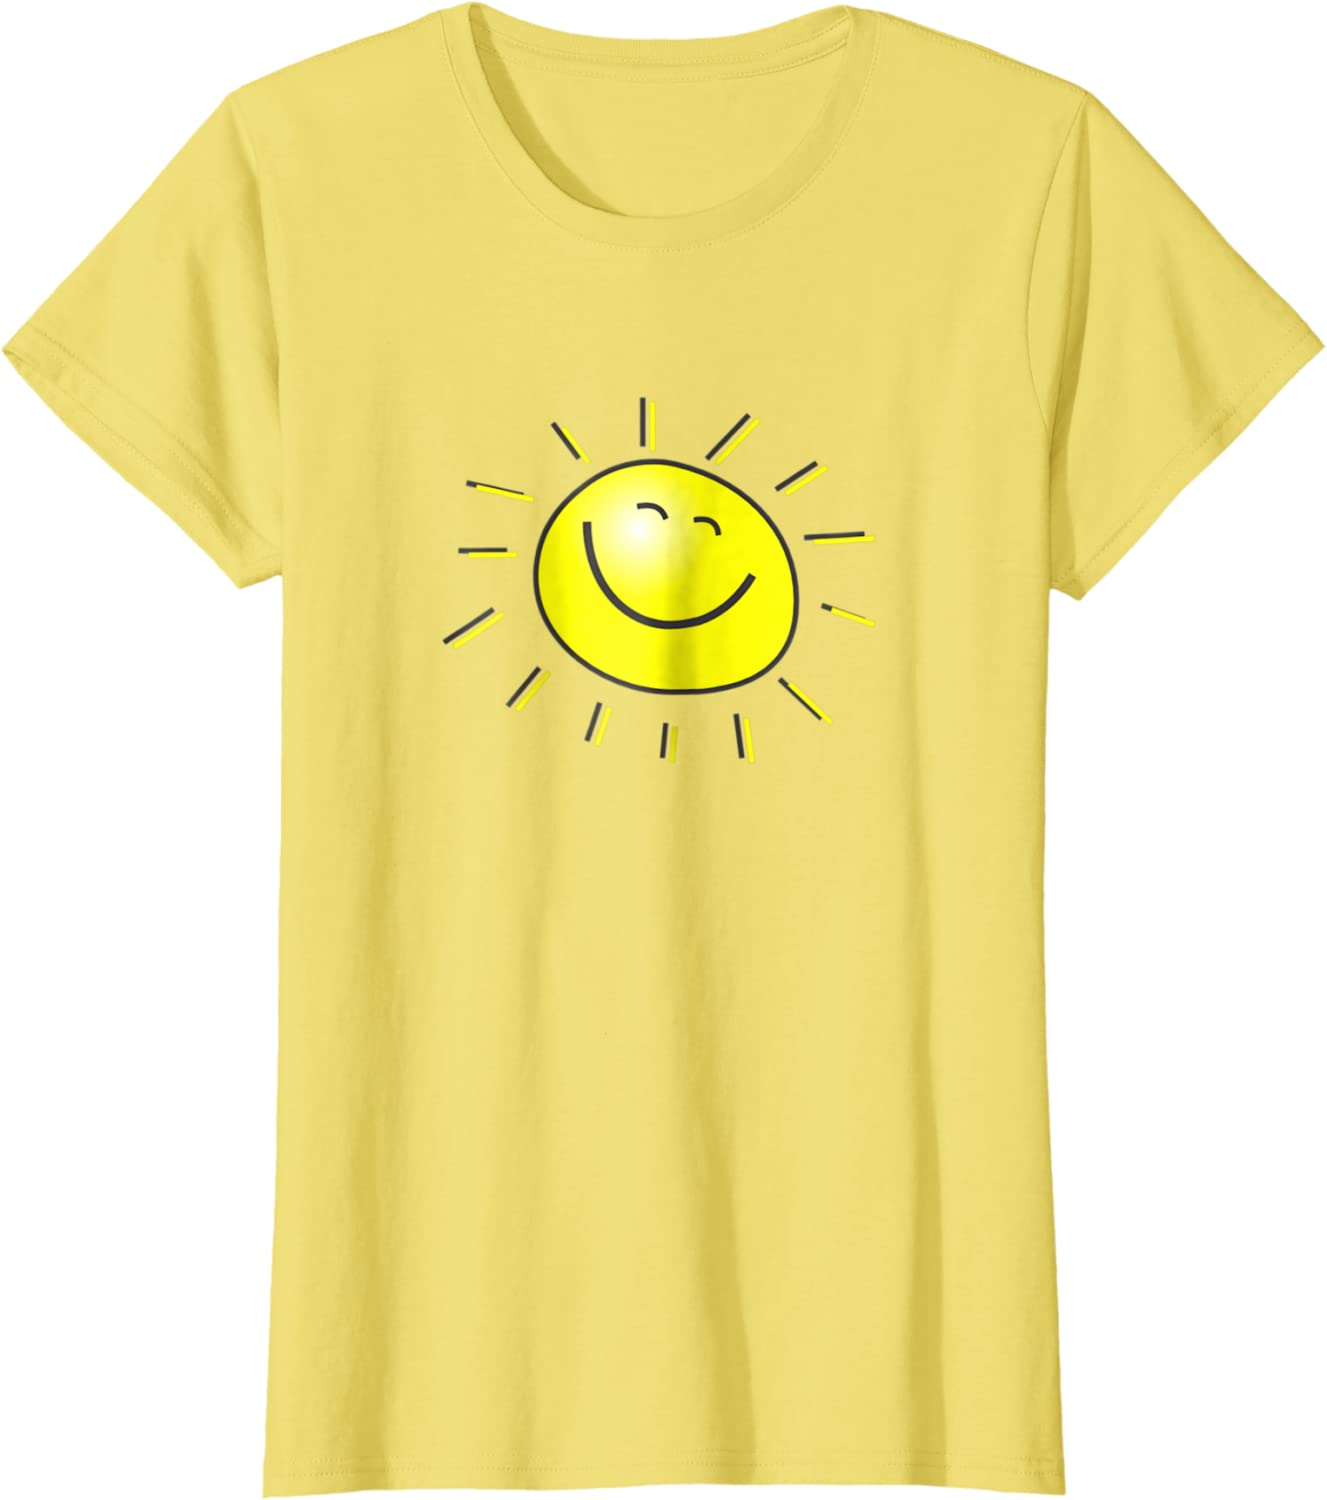 Short Sleeve Kids Adults Unisex T-shirt Happy Sun With Smiley Face